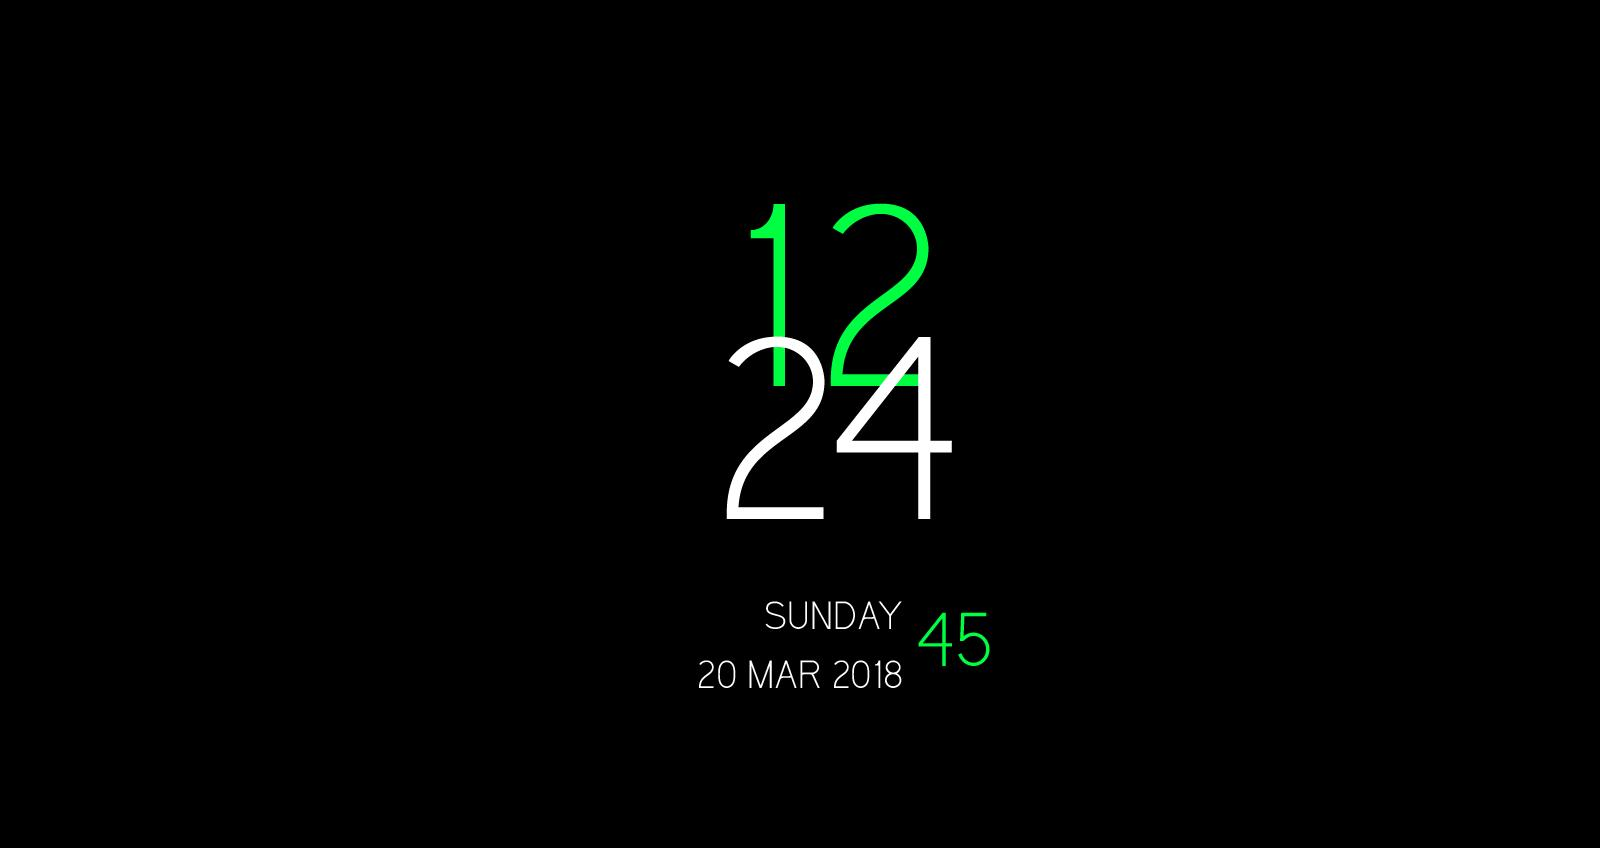 New Digital Clock Live Wallpaper for Android - APK Download